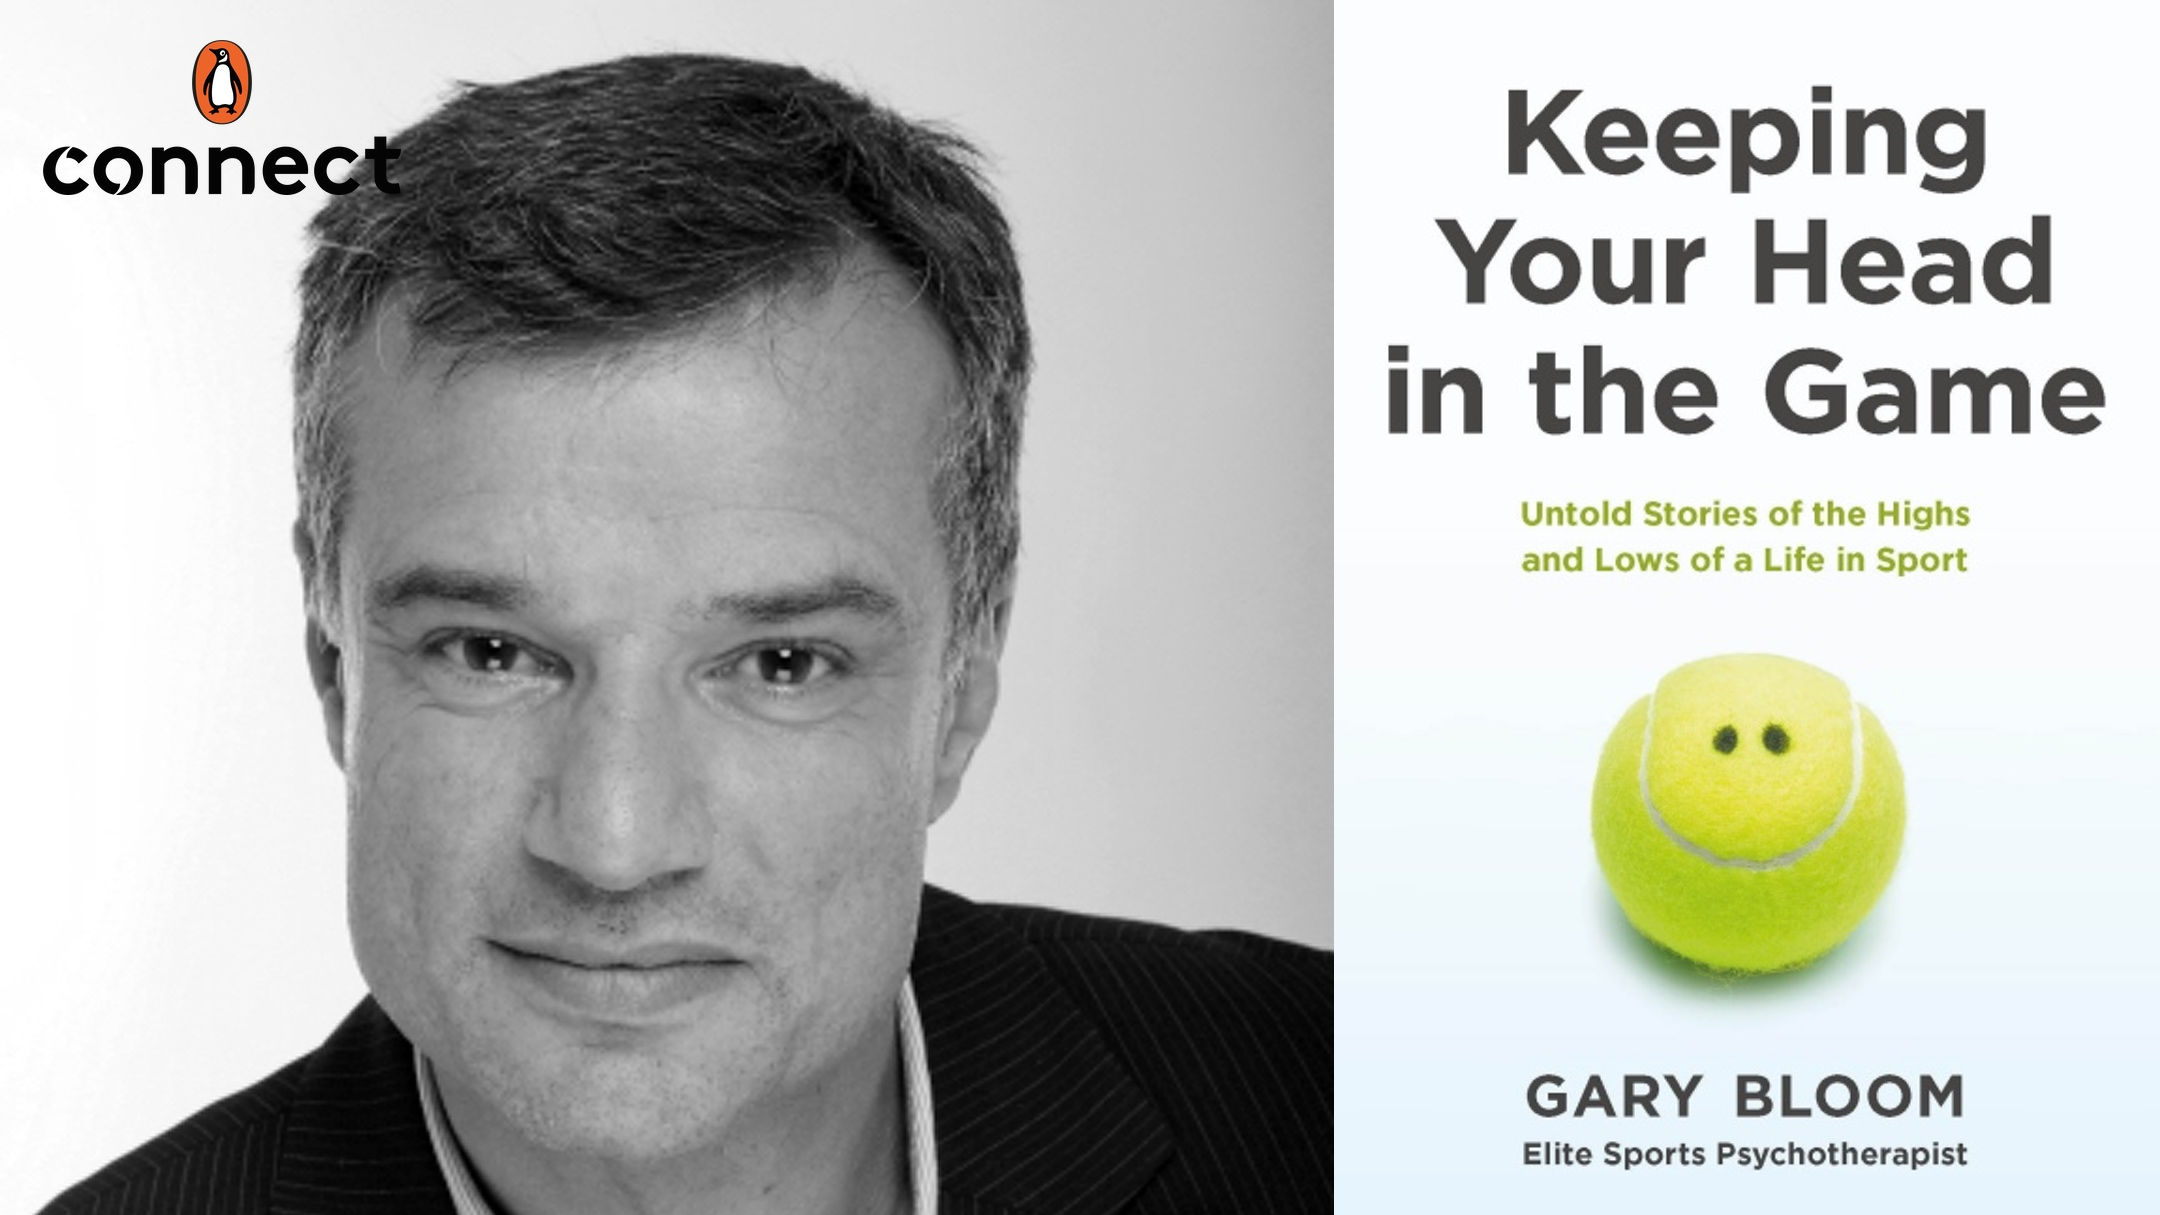 KEEPING YOUR HEAD IN THE GAME for Wordpress - KEEPING YOUR HEAD IN THE GAME, Gary Bloom